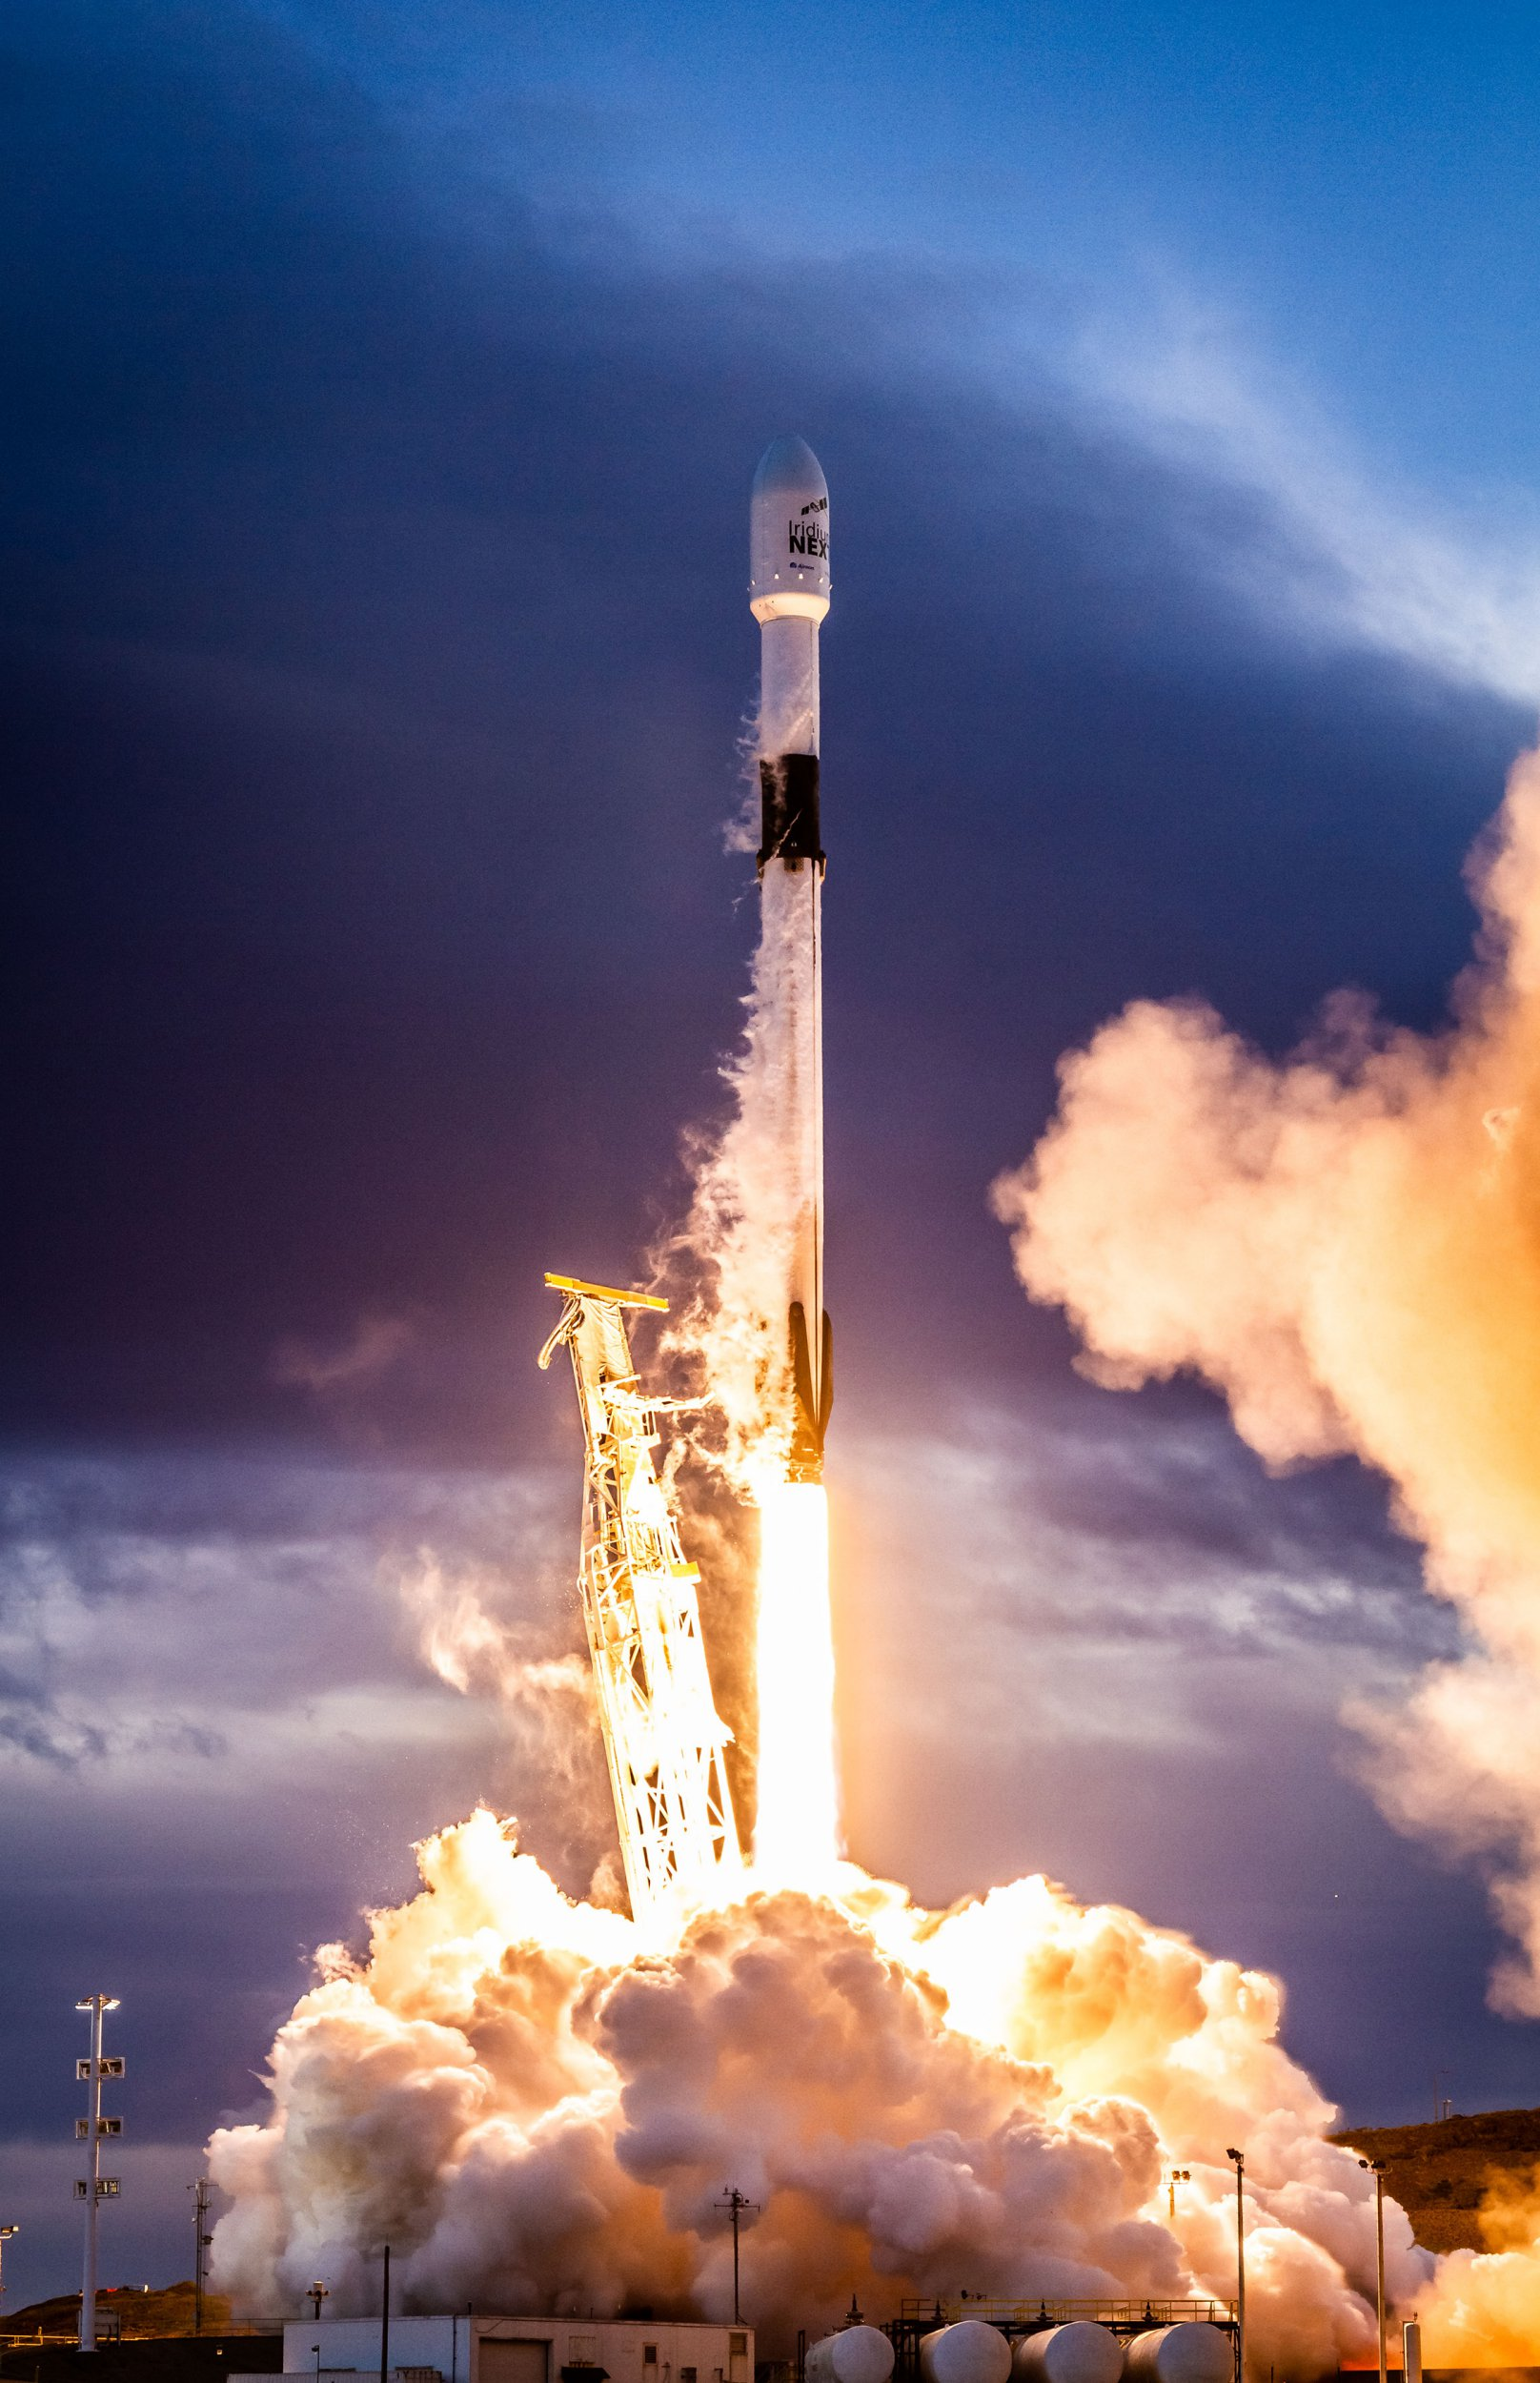 """SpaceX successfully launched the eighth and final set of satellites for Iridium?s next-generation global satellite constellation, Iridium NEXT, on January 11, 2019, from Vandenberg Air Force Base in California. Falcon 9's first stage delivered the second stage to its targeted orbit followed by deployment of all 10 Iridium NEXT satellites. Following stage separation, the first stage of Falcon 9 successfully landed on SpaceX's """"Just Read the Instructions"""" drone-ship stationed in the Pacific Ocean. Falcon 9's first stage for the Iridium-8 mission previously supported the Telstar 18 VANTAGE mission in September 2018. Photo by SpaceX/UPIPHOTOGRAPH BY UPI / Barcroft Images"""